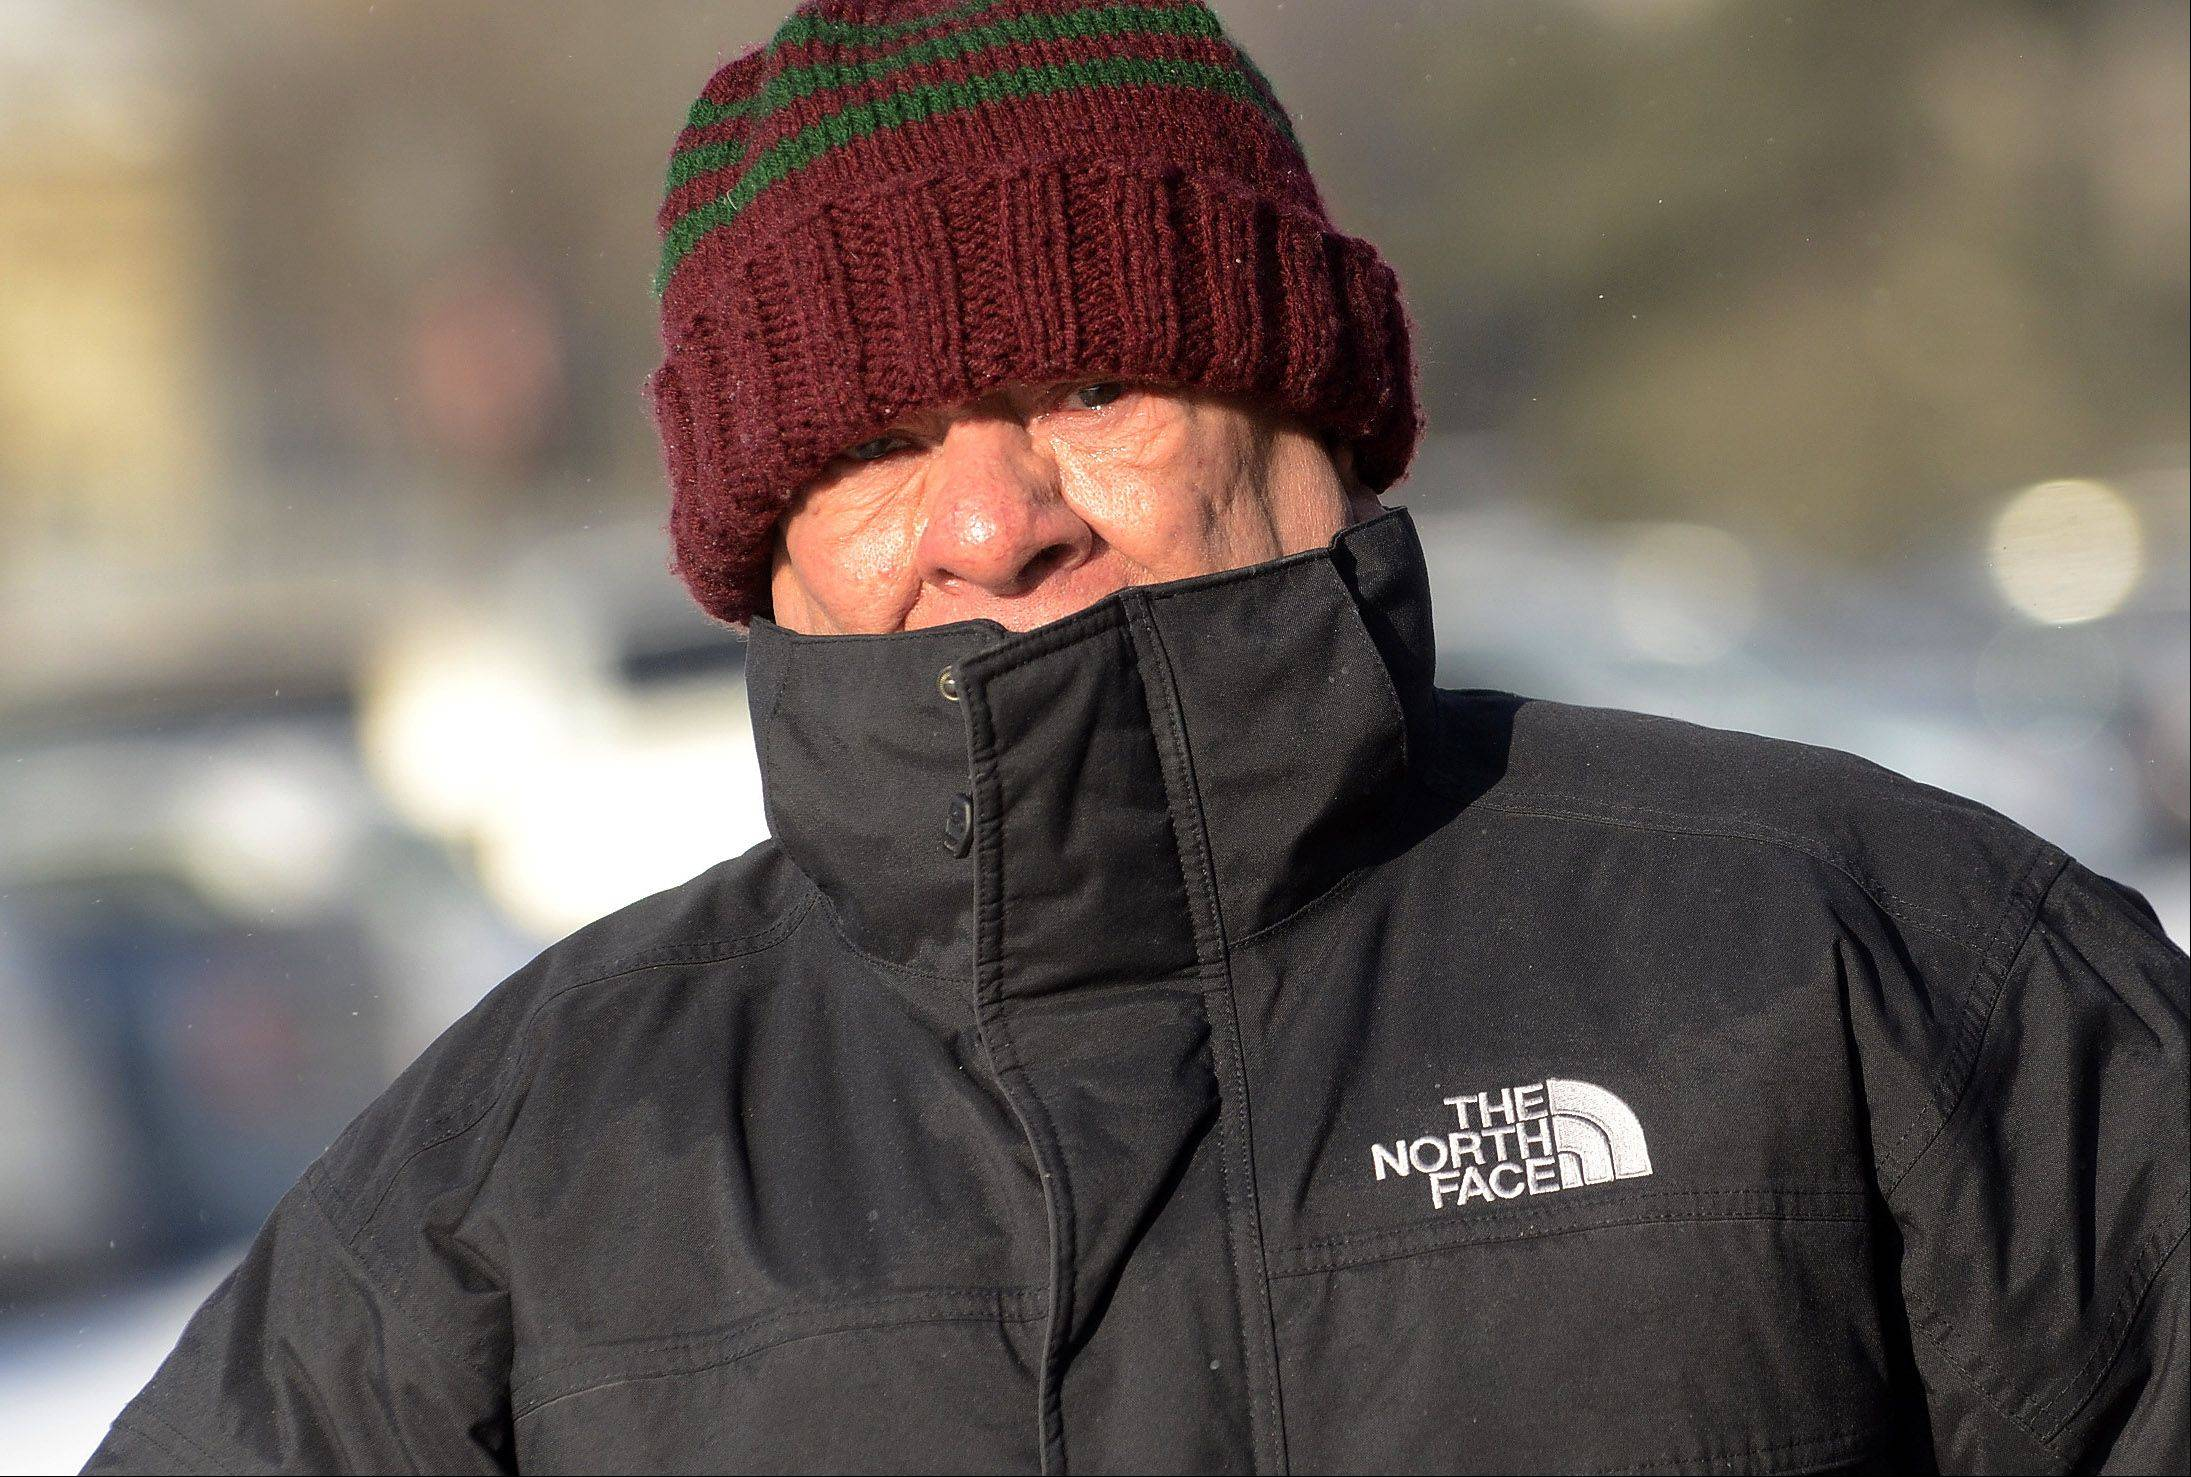 Bob Chwedyk/bchwedyk@dailyherald.com Alfredo Faries of Barrington bundles up at the Barrington Metra station Thursday morning.